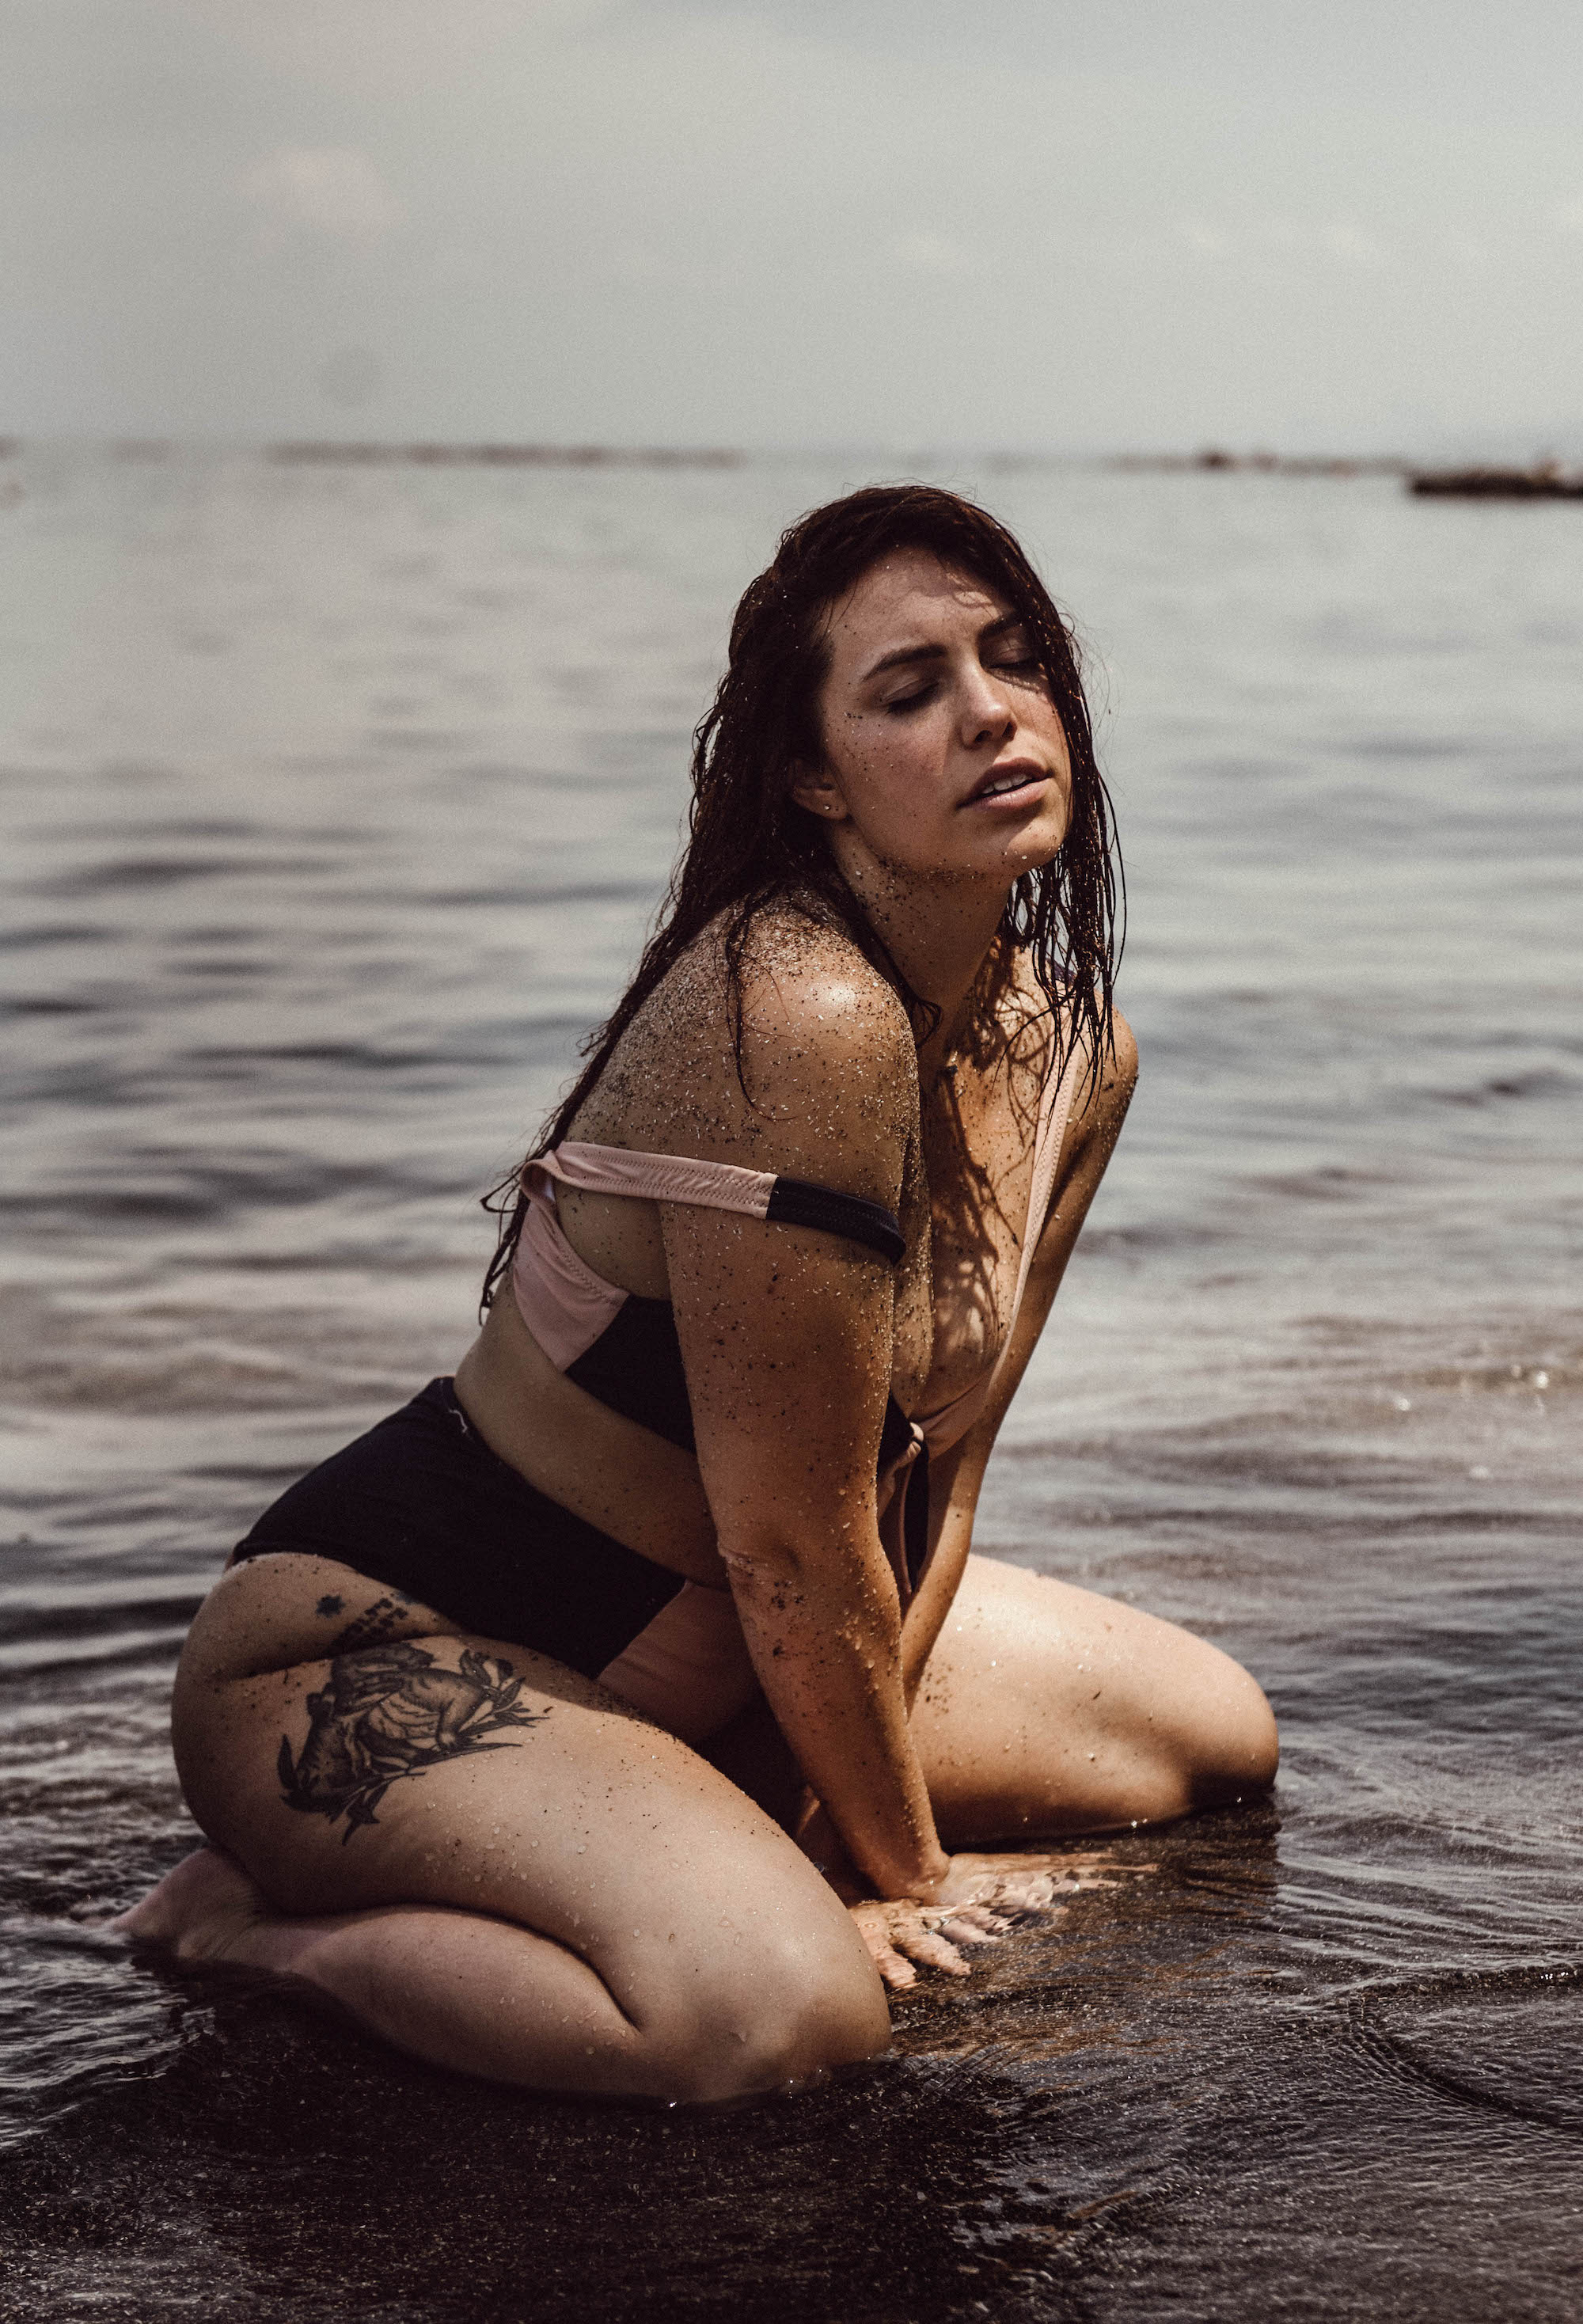 Brunette woman in bathing suit in lake intimate boudoir photography New York City outdoors